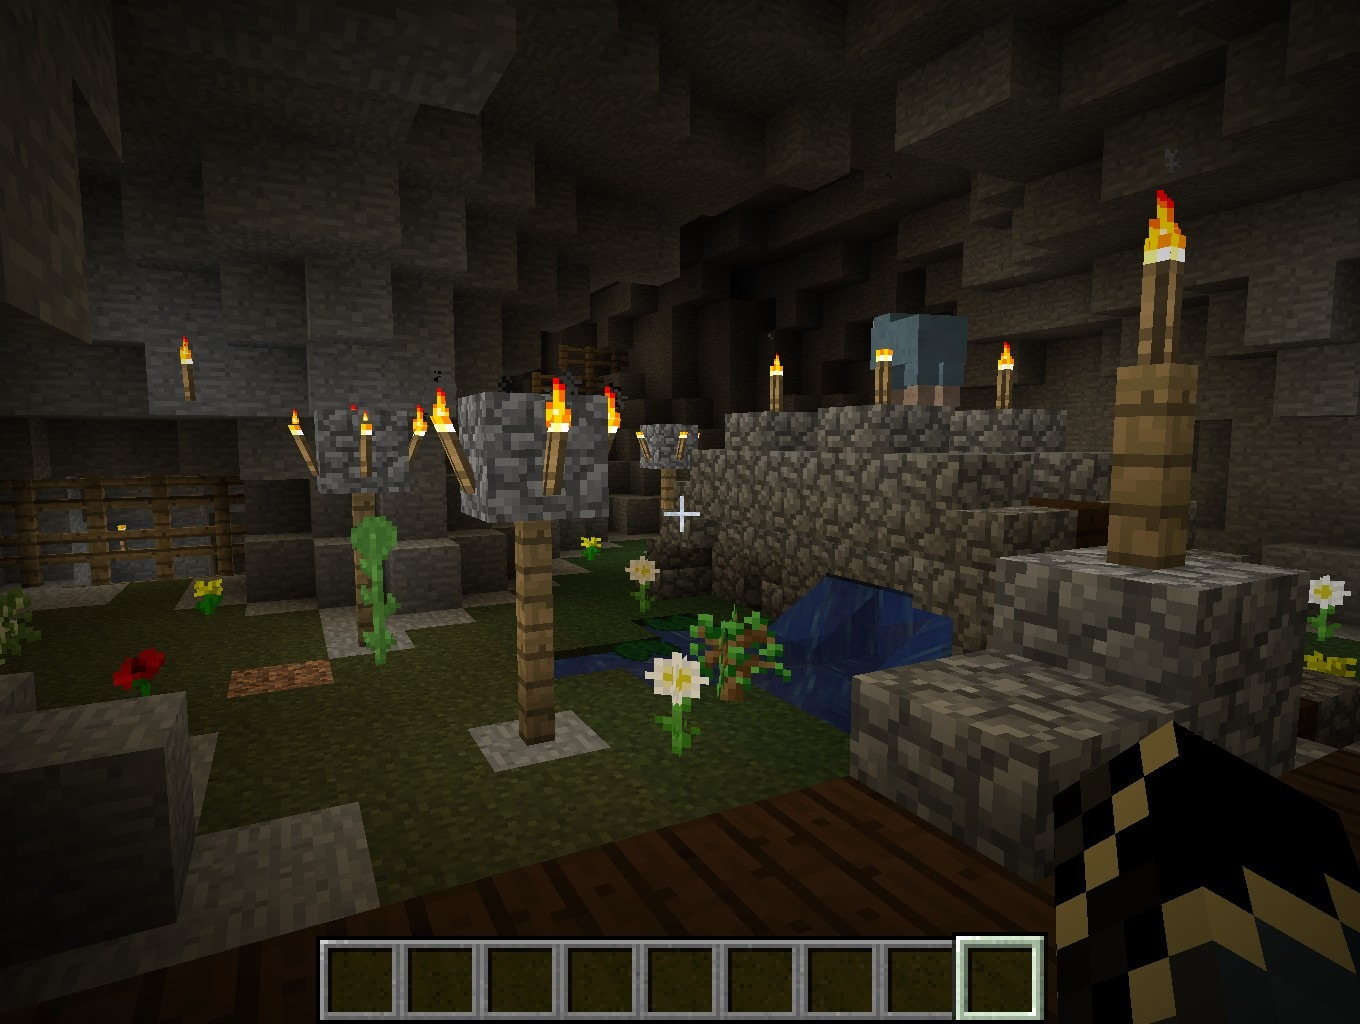 Our Minecraft server is starting to look pretty - Critical Hit